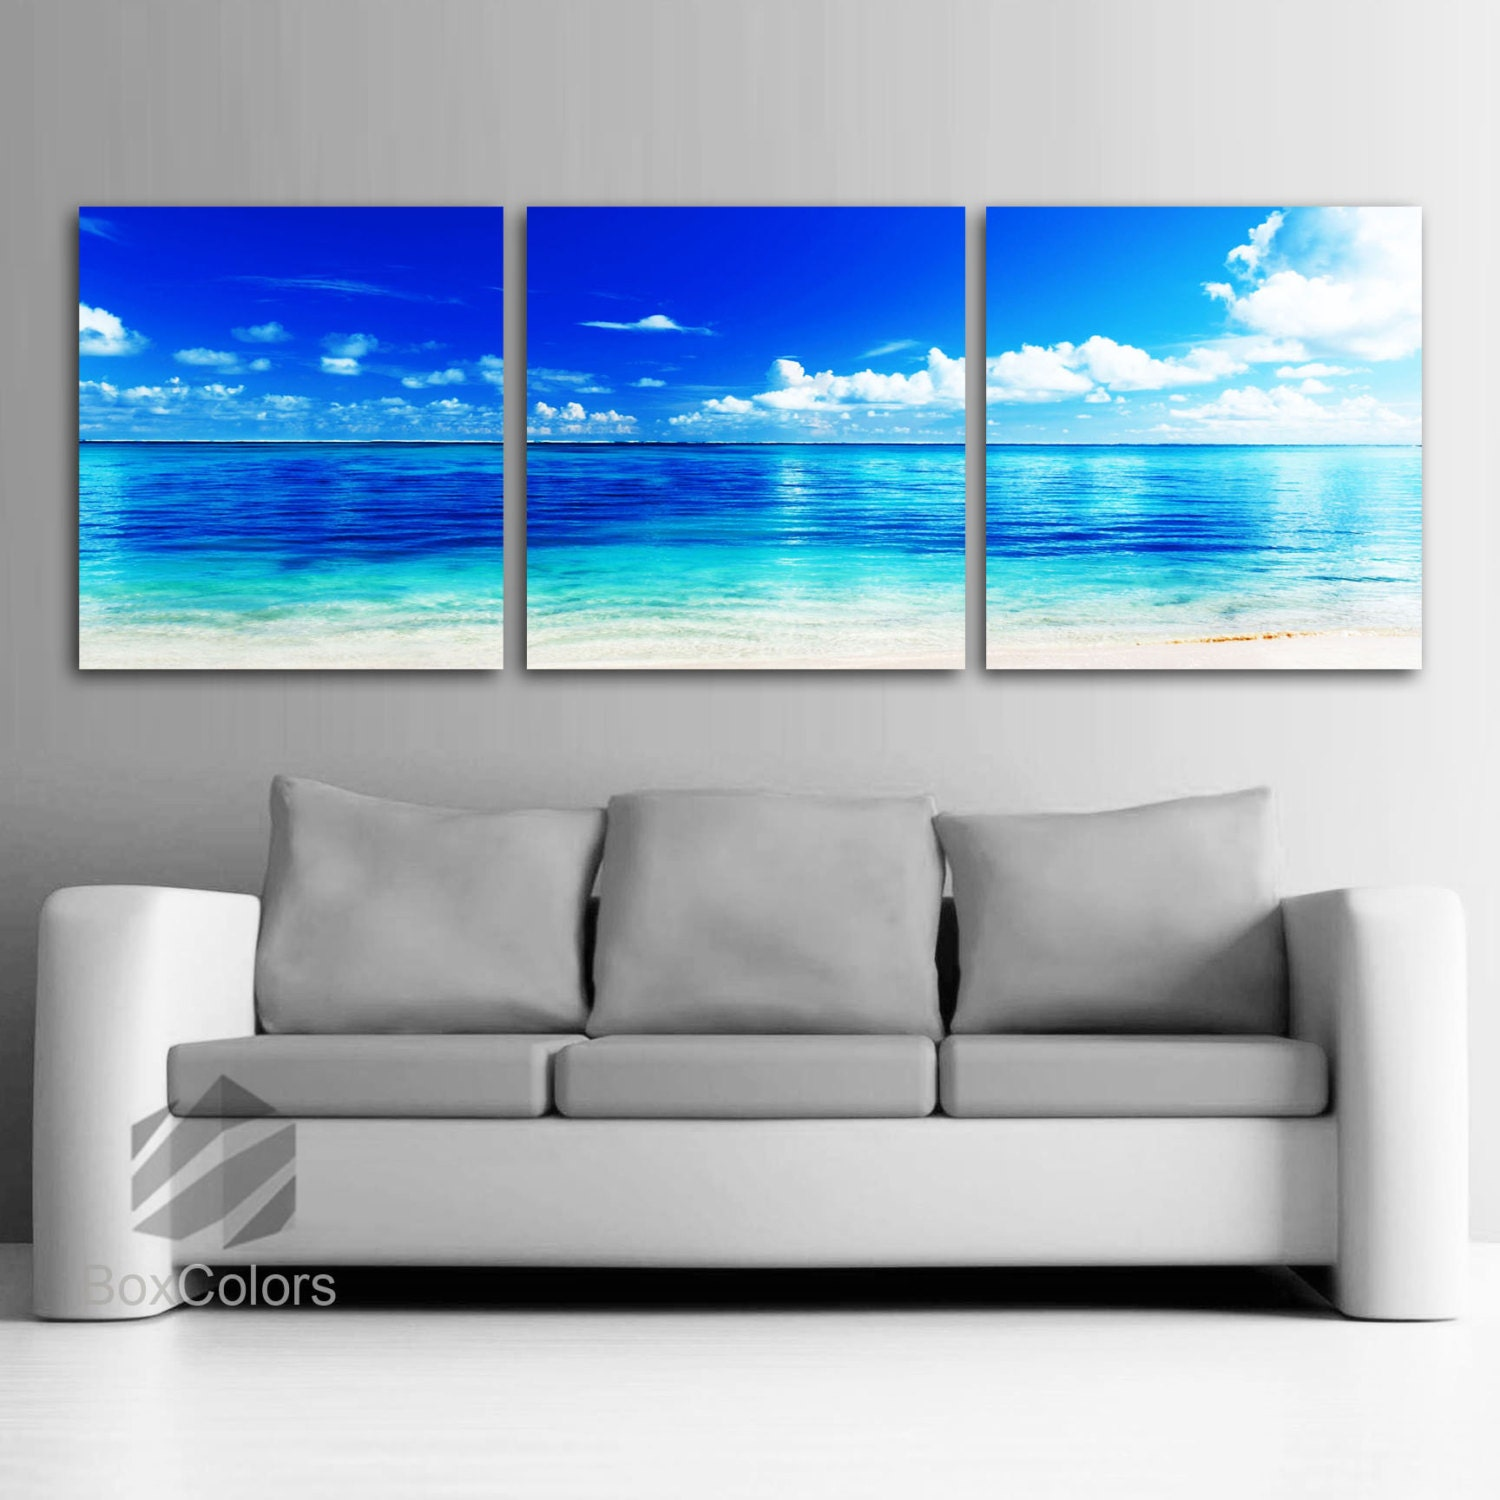 large 20x 60 3 panels art canvas print beach. Black Bedroom Furniture Sets. Home Design Ideas